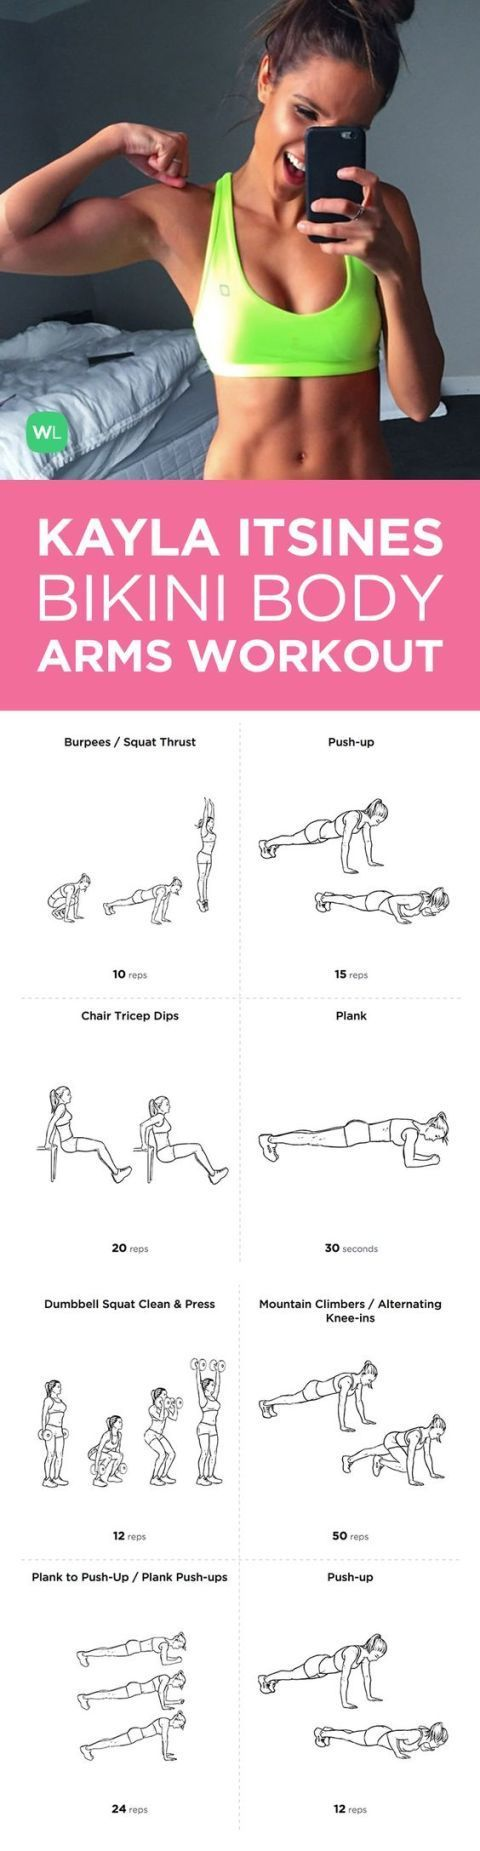 Arm Workout Do your arms need some love? Kayla Itsines is here to help with a workout that will leave them sore (but a good sore!) for days.